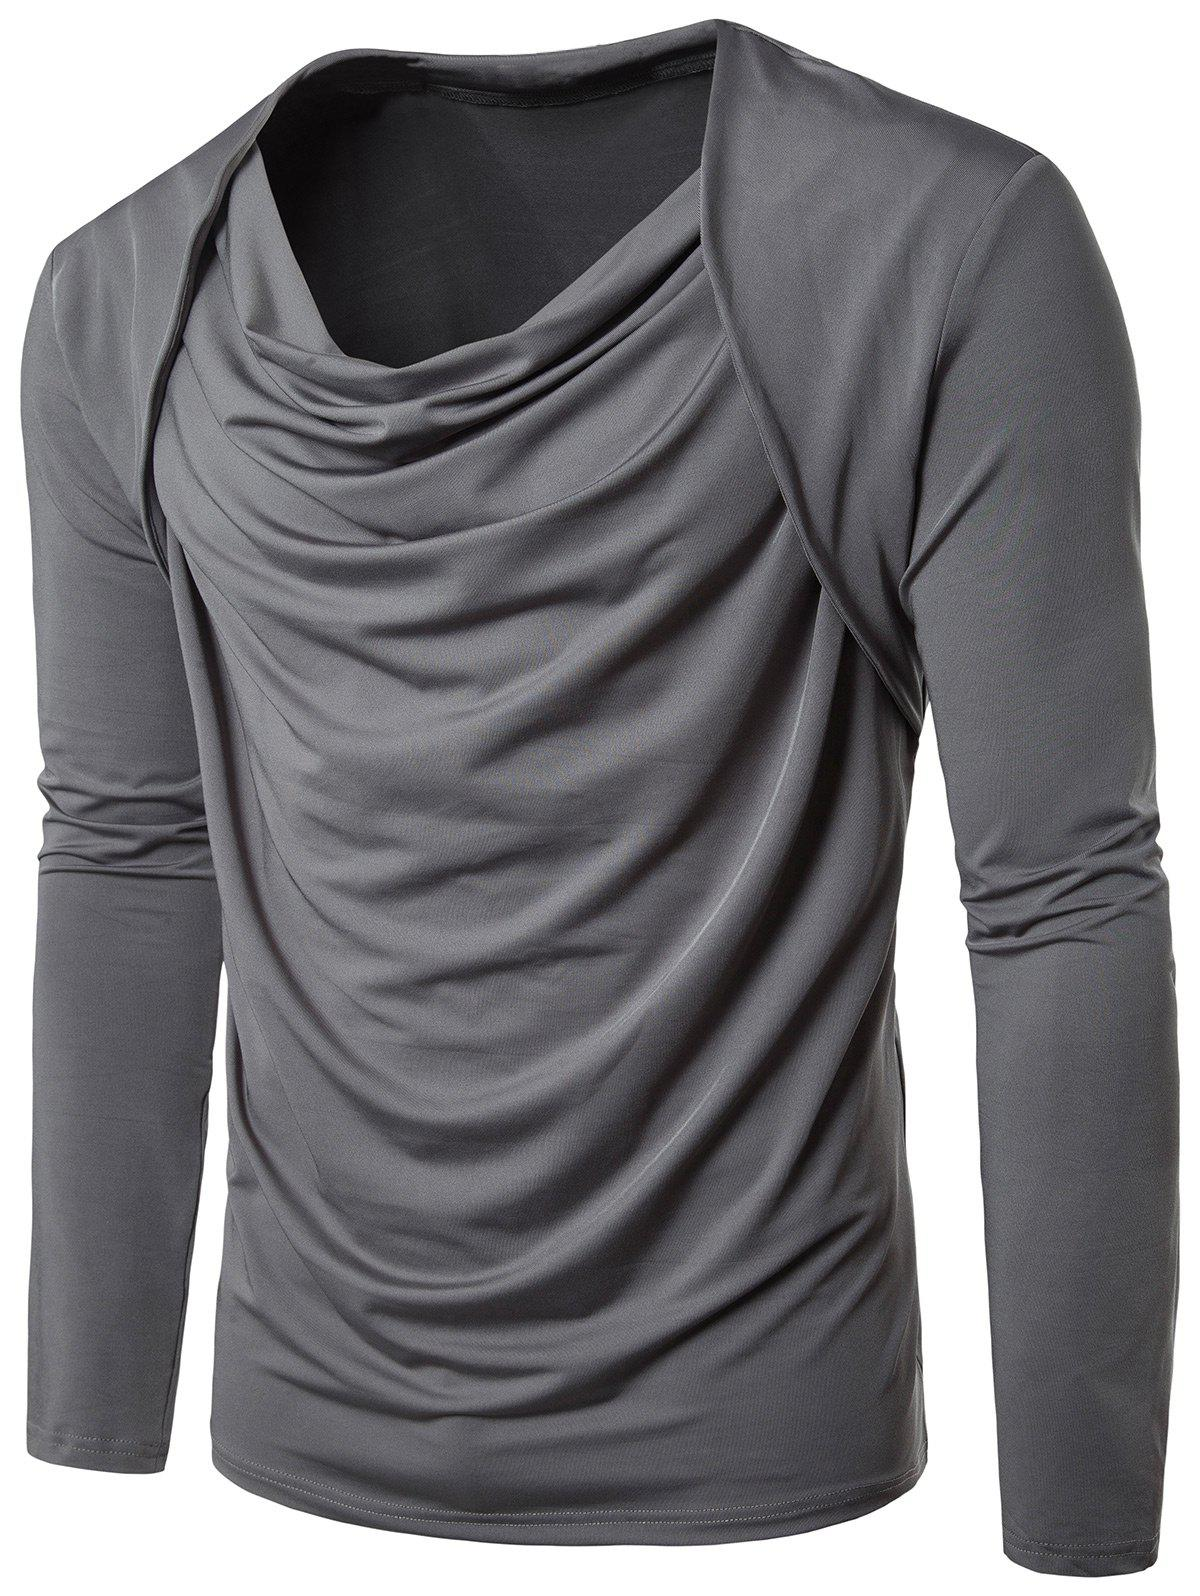 Hip Hop Pleated Cowl Neck Long Sleeve T-shirt - GRAY XL